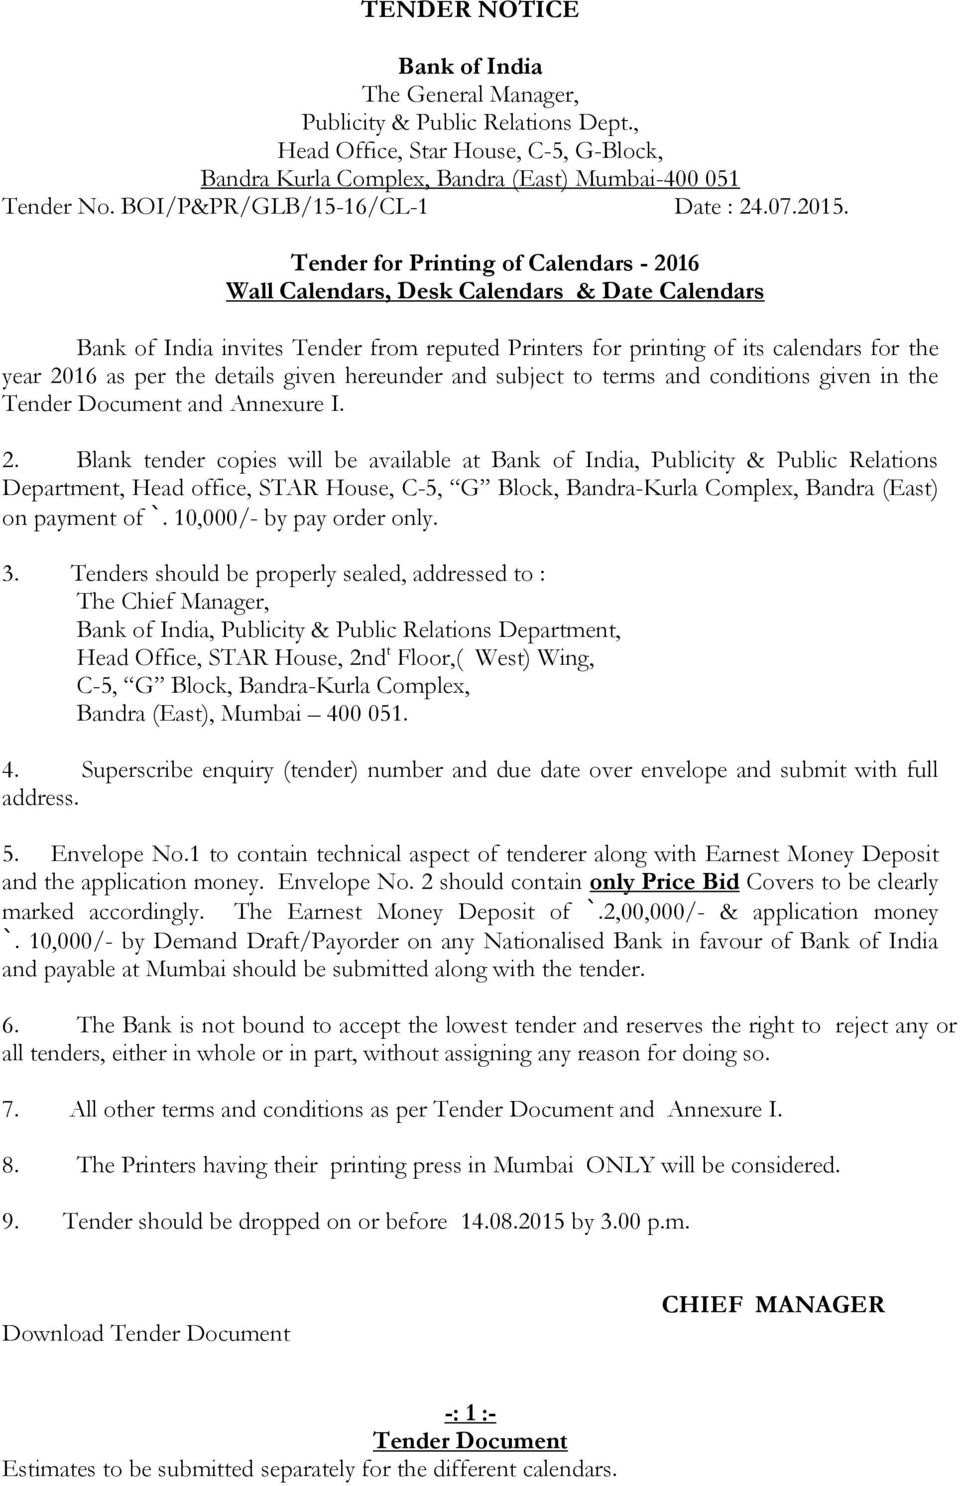 Tender for Printing of Calendars - 2016 Wall Calendars, Desk Calendars & Date Calendars Bank of India invites Tender from reputed Printers for printing of its calendars for the year 2016 as per the